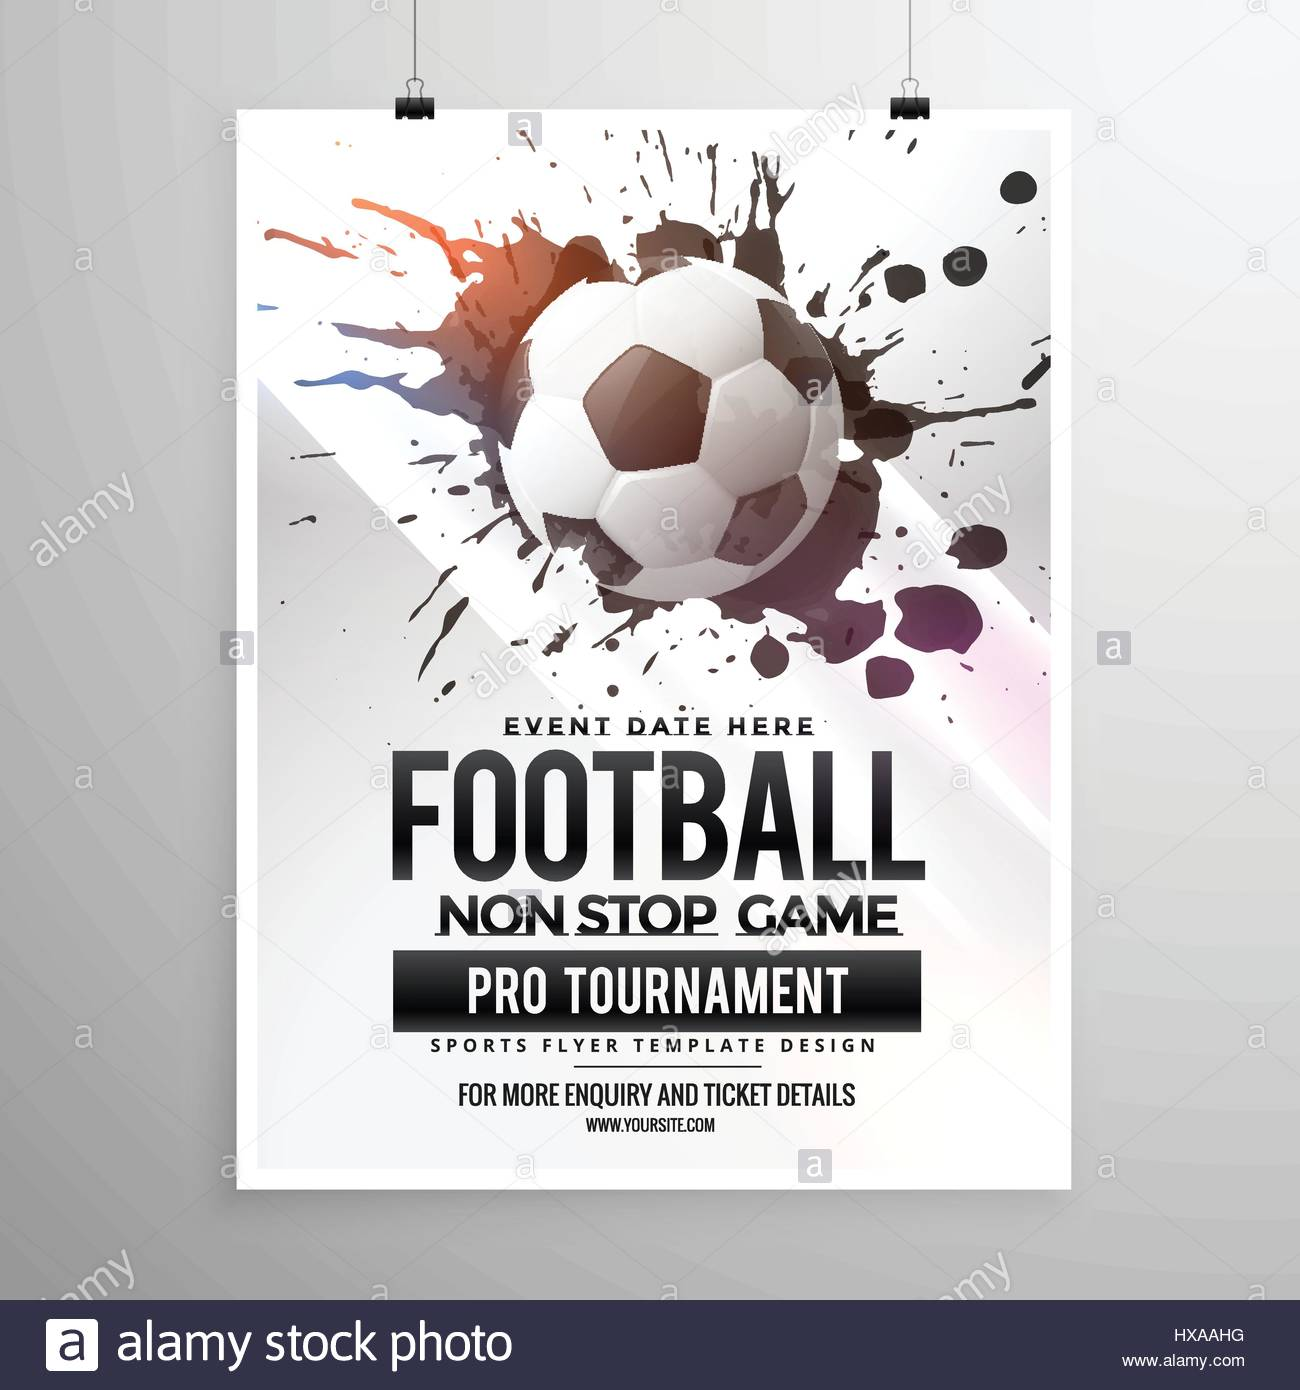 football soccer game tournament flyer brochure template stock vector